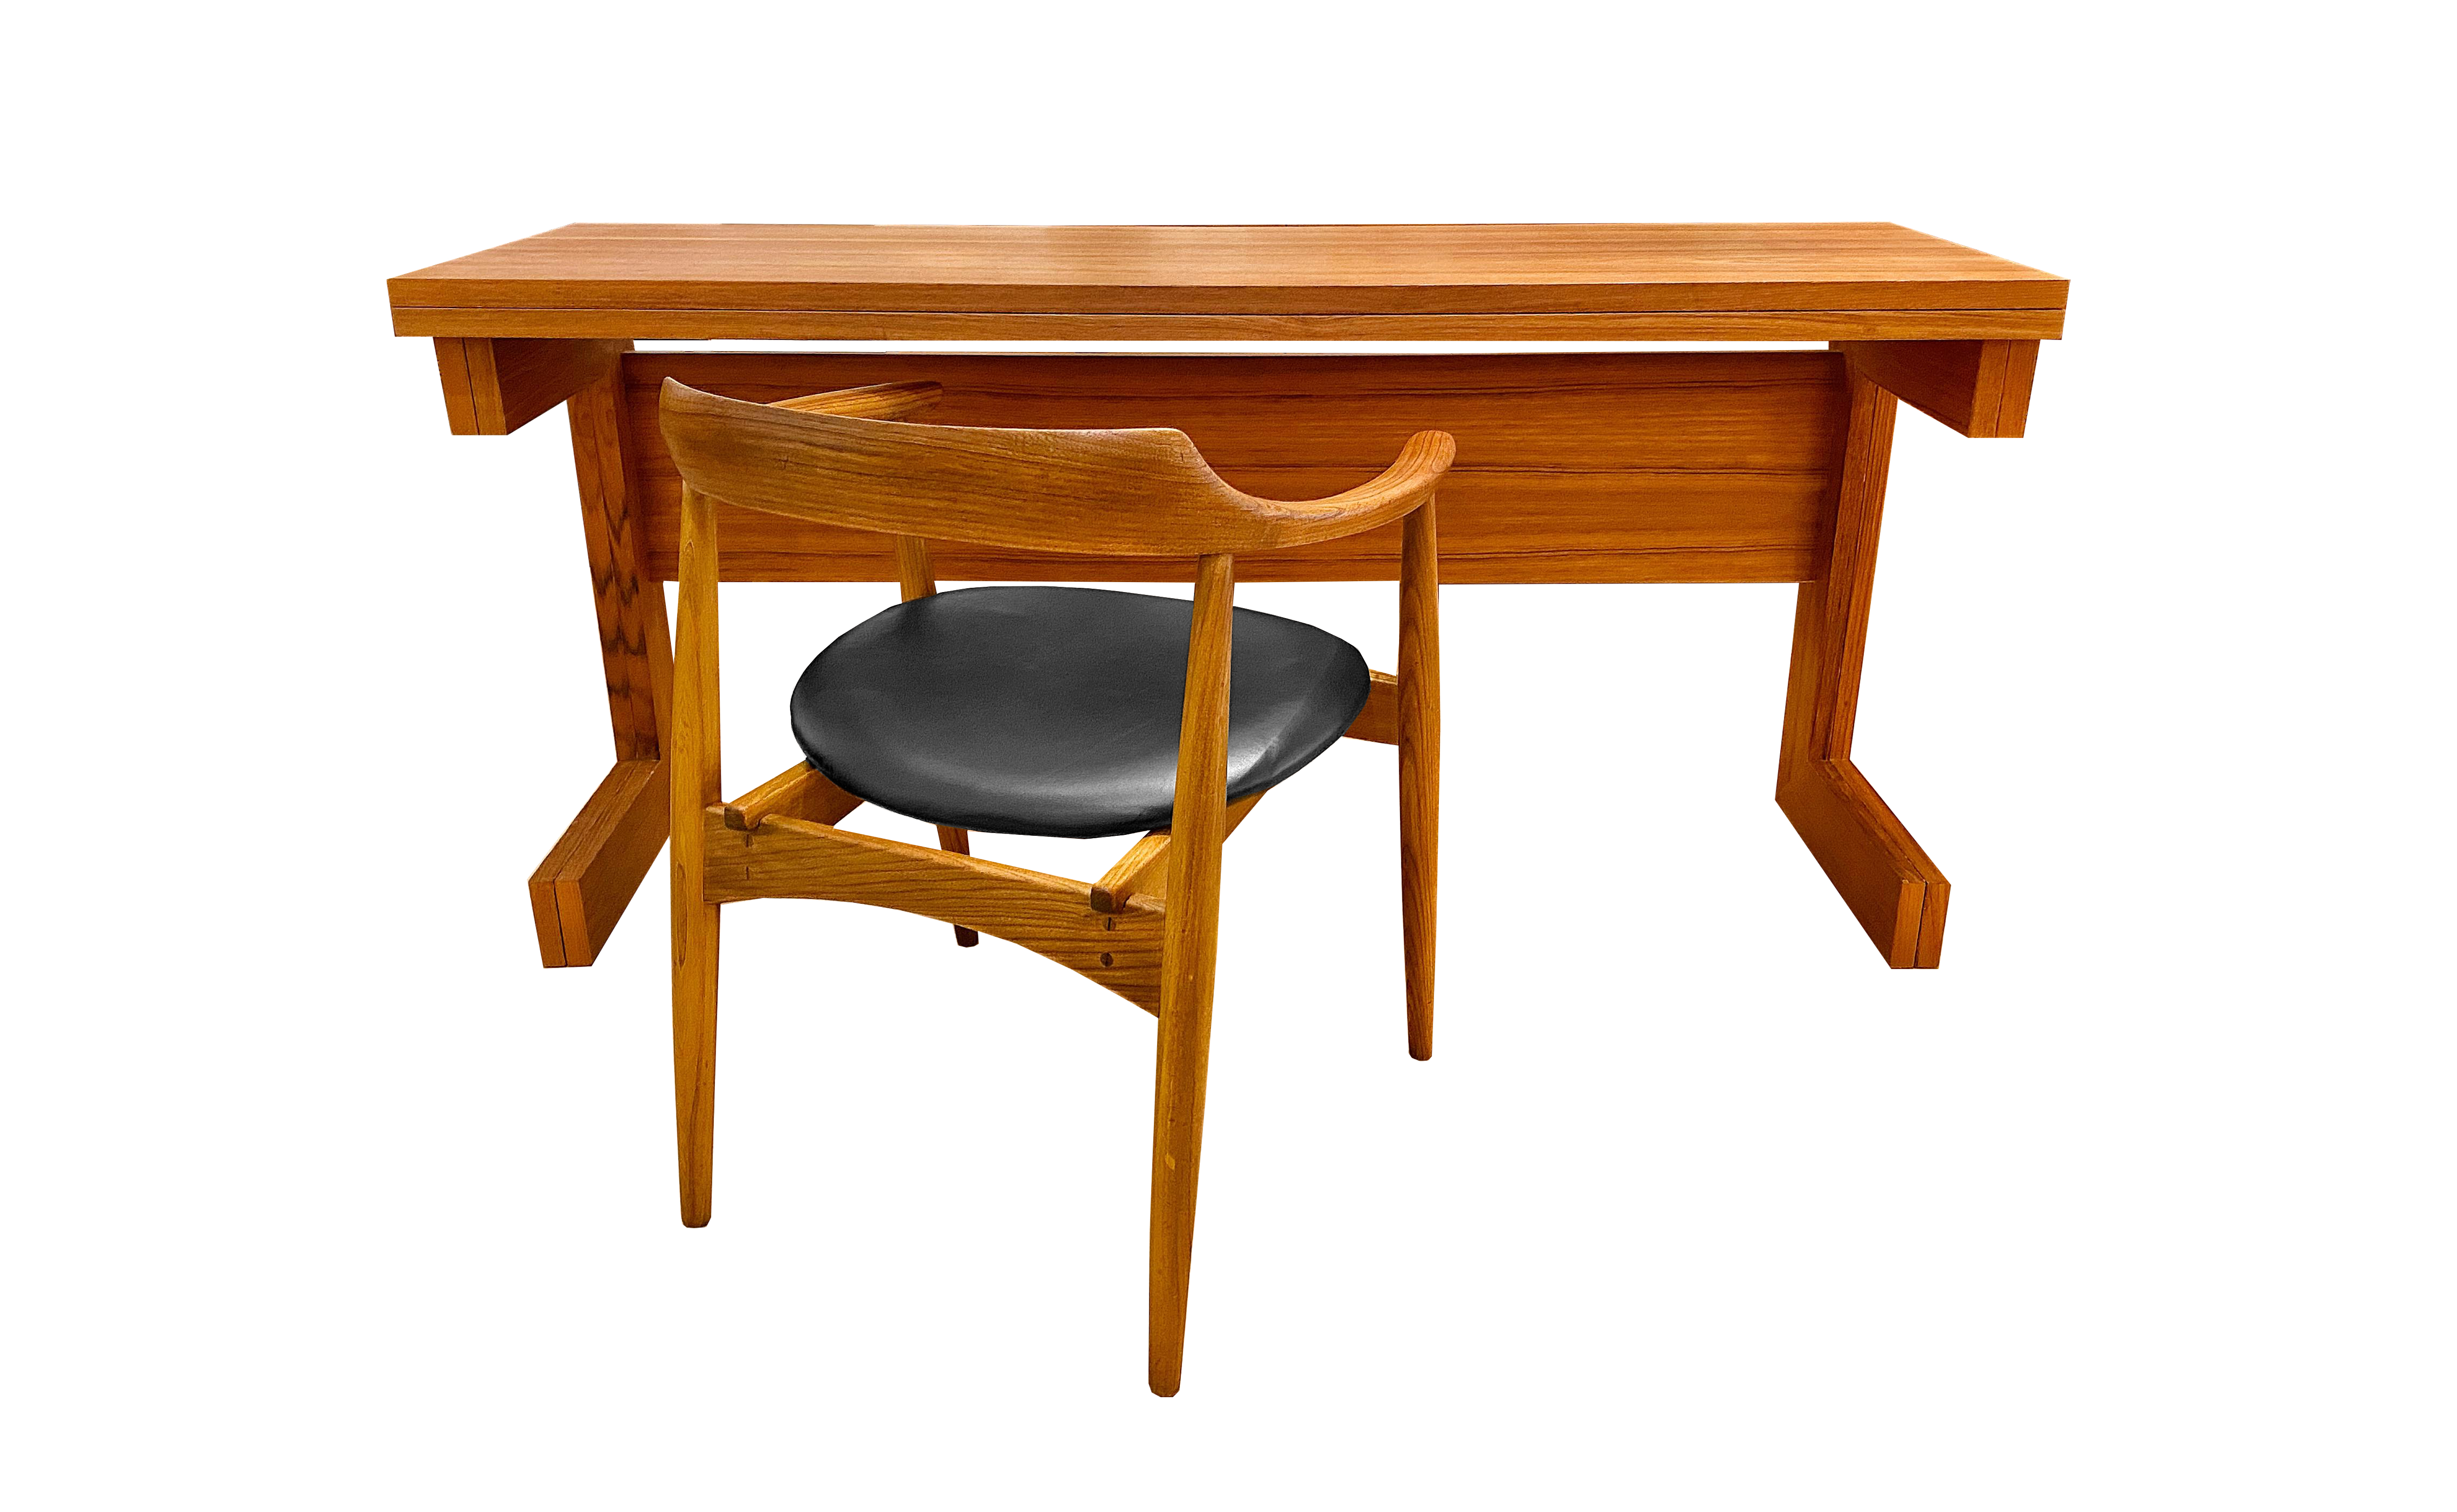 Bureau / table pliante en teck 70's